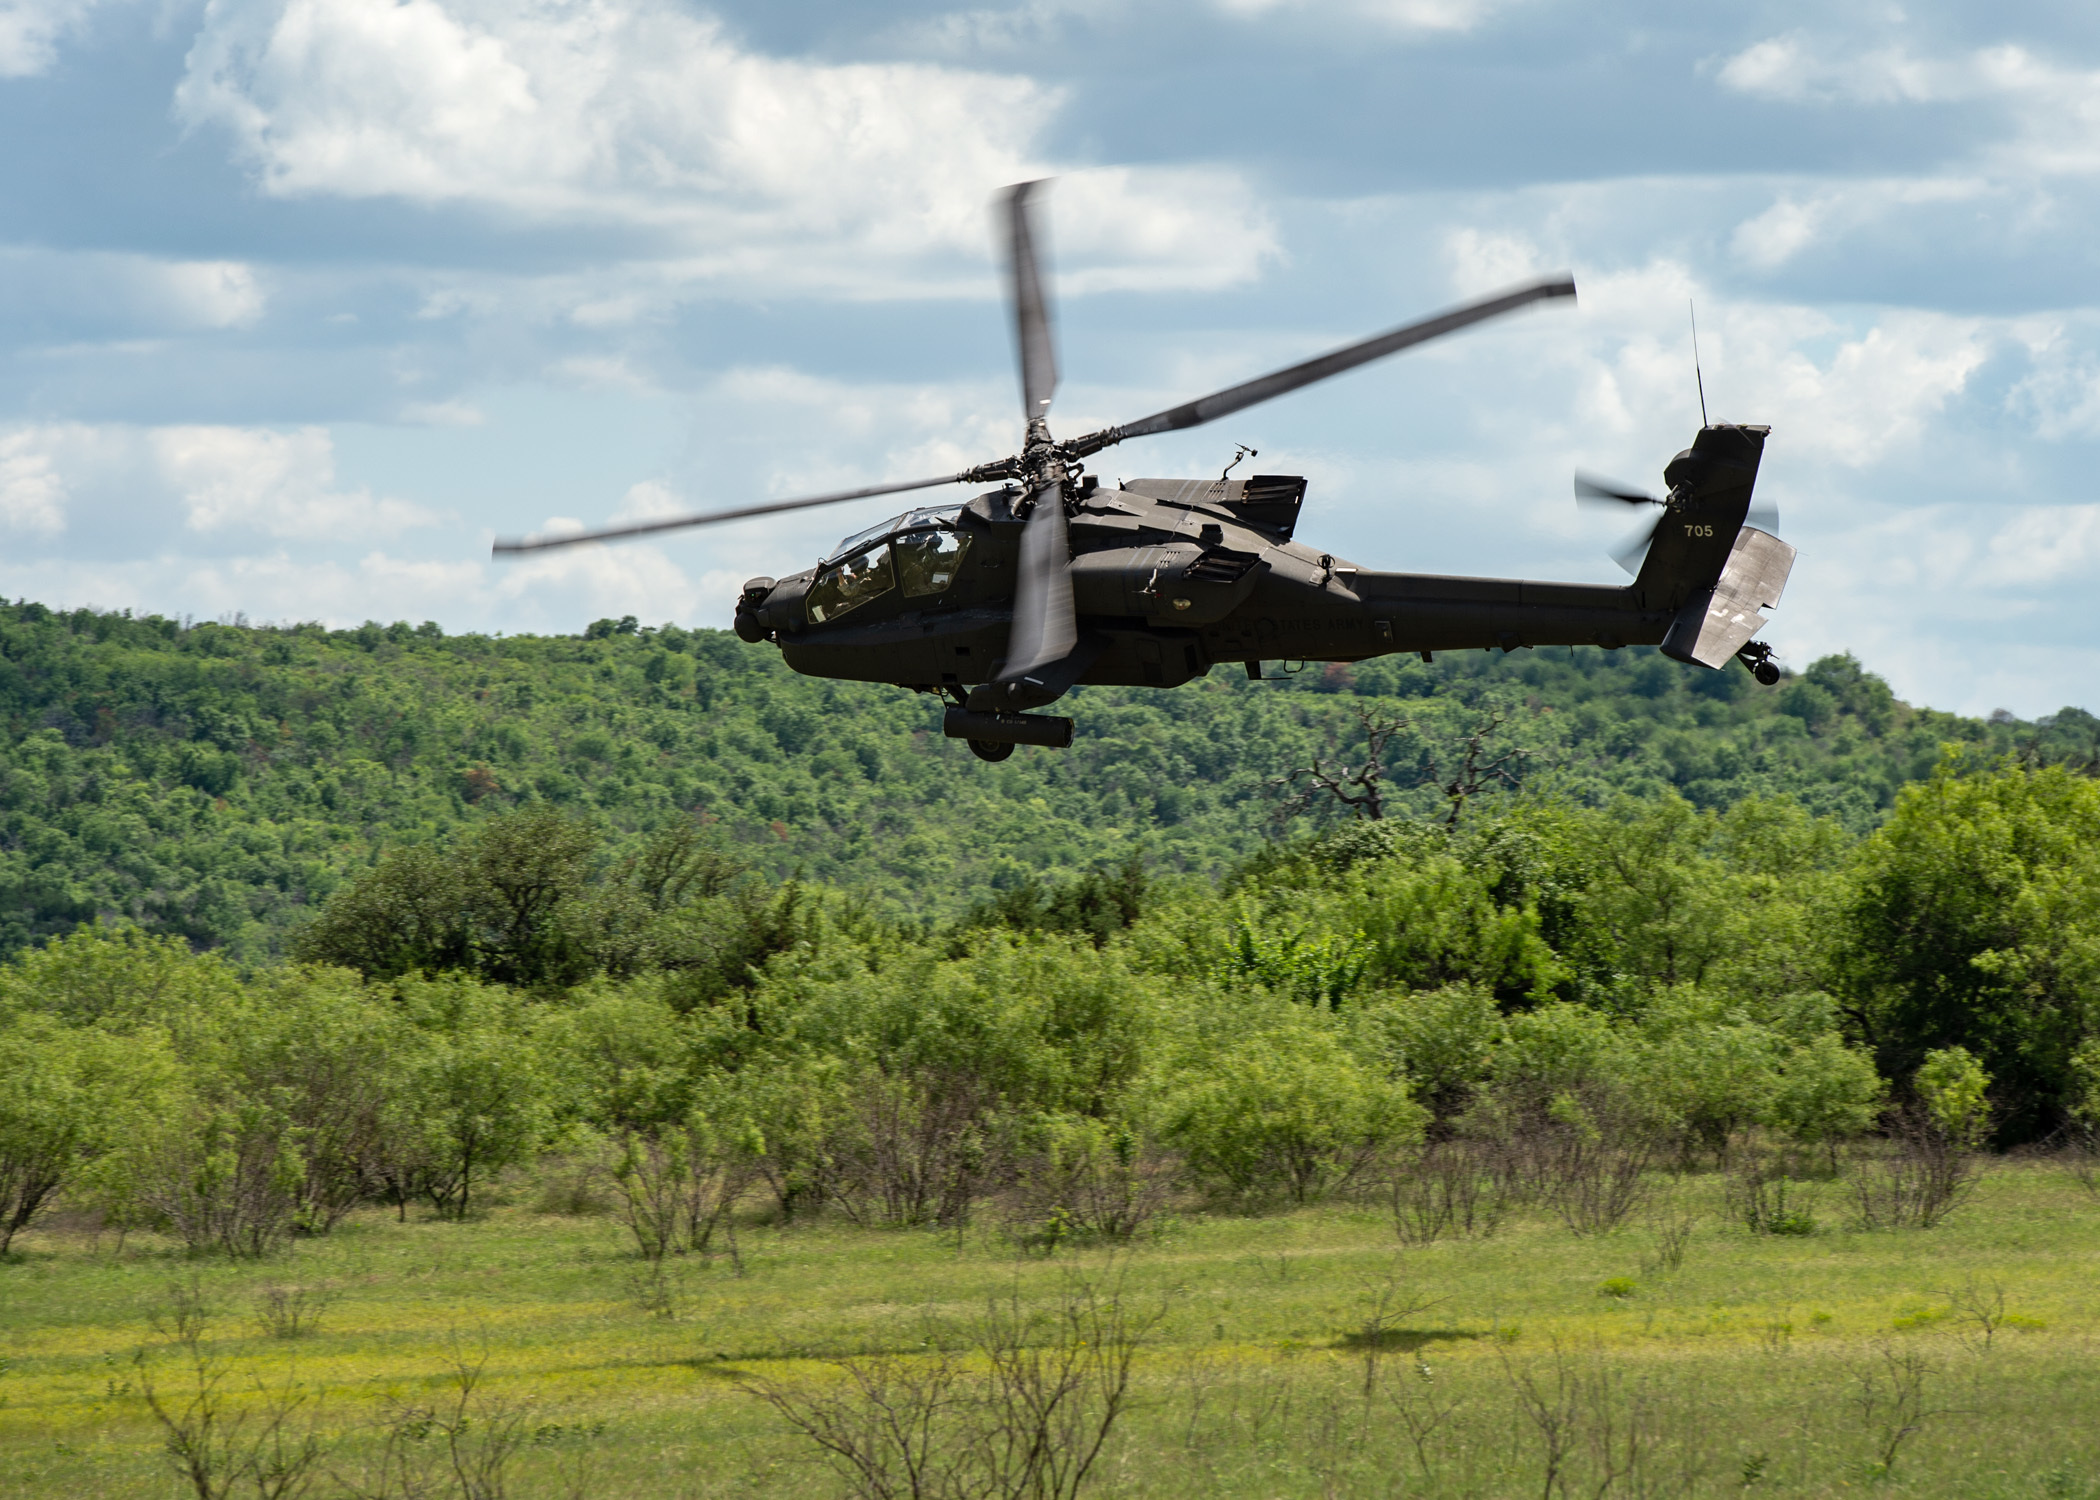 An AH-64D Apache helicopter from the 1st Attack Reconnaissance Battalion, 149th Aviation Regiment, 36th Combat Aviation Brigade conducts aerial gunnery training at Fort Hood, Texas. (Staff Sgt. Mark Scovell, Army)